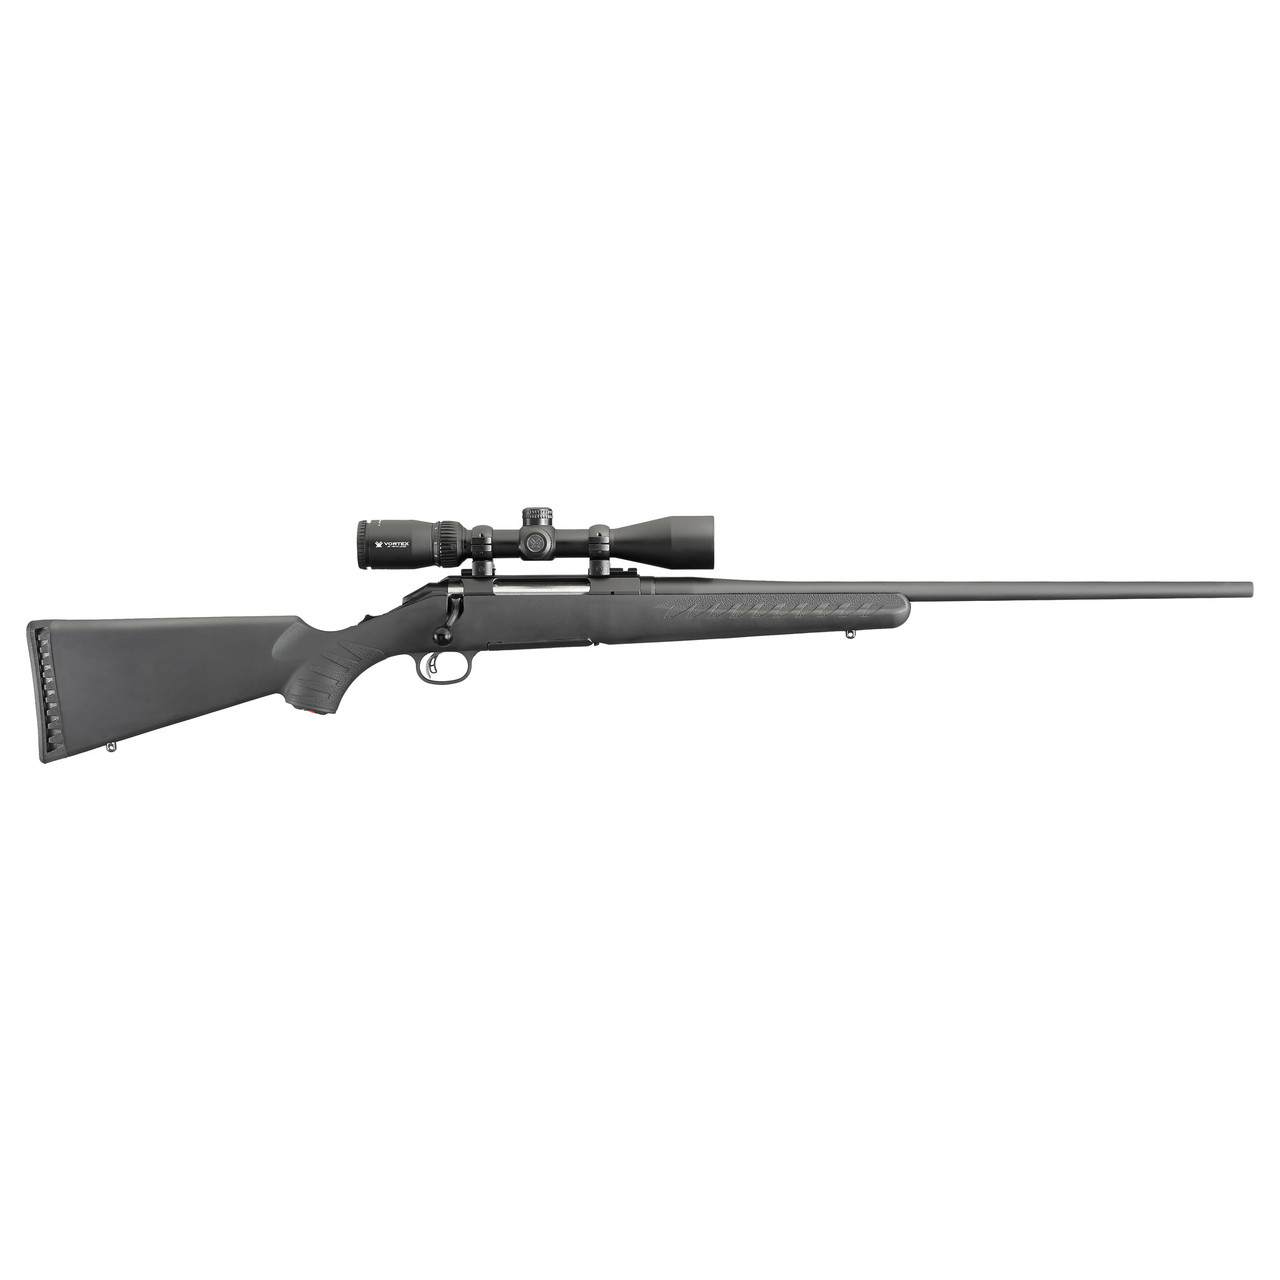 Ruger American Bolt Action w/ Vortex Scope CALIFORNIA LEGAL - .270 Win